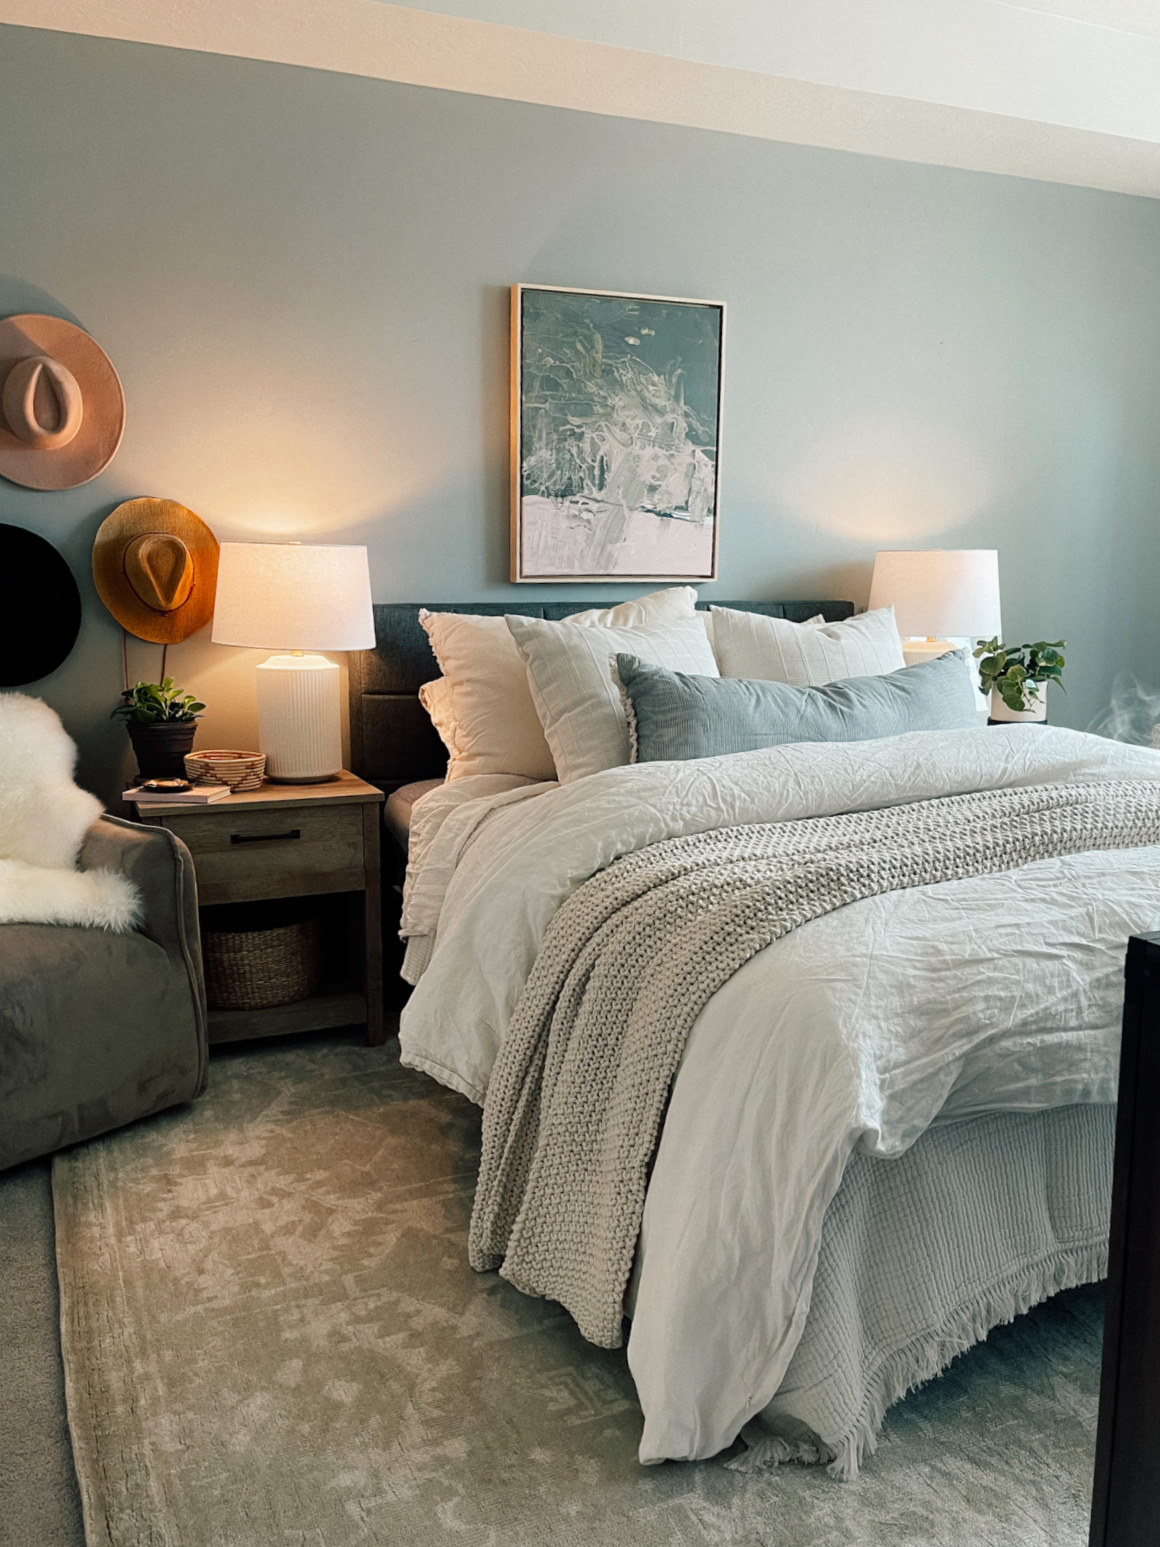 Rental Bedroom with Fluffy Bedding and Non-Toxic Mattress Tuft & Needle